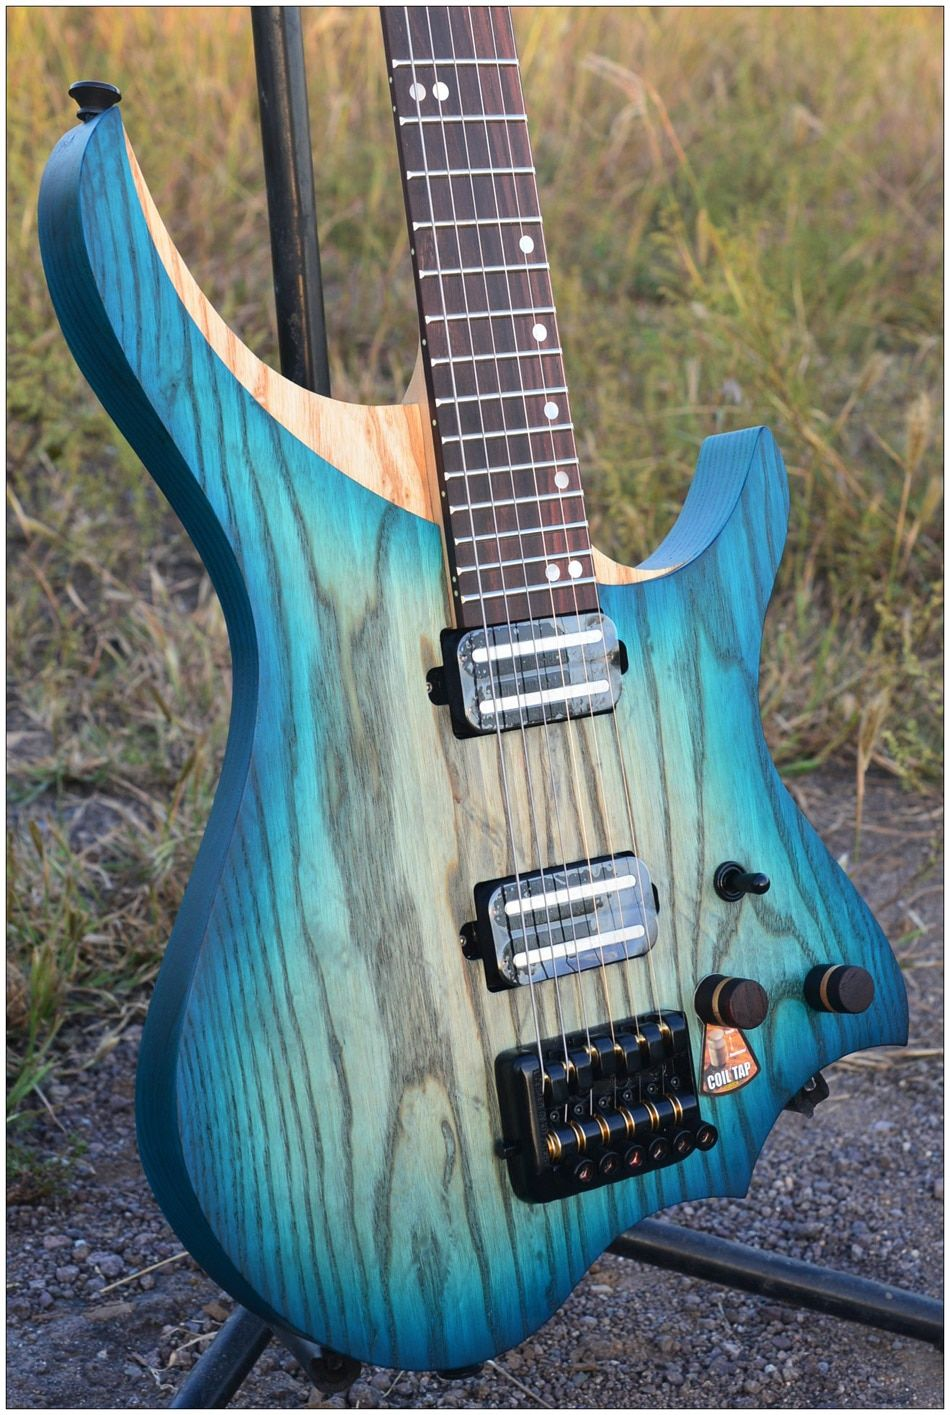 NK Headless Electric Guitar steinberger style Model Blue burst color 3 pics Flame maple Neck in stock Guitar free shipping